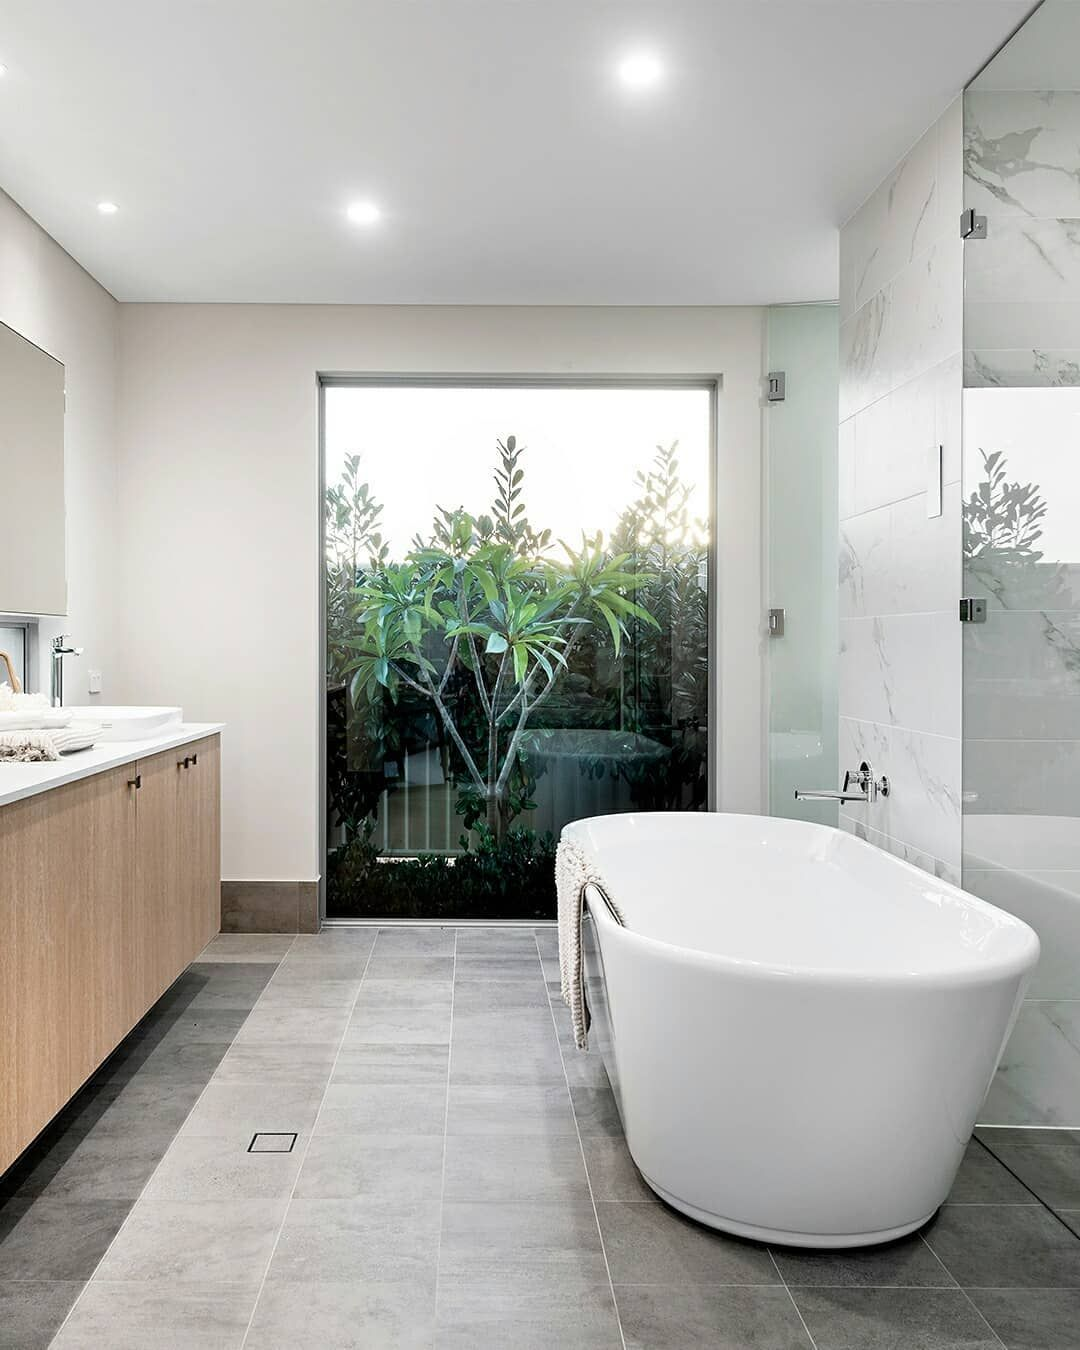 10 Best Bathroom Remodel Ideas On A Budget That Will Inspire You Bathrooms Remodel Amazing Bathrooms Open Plan Bathrooms